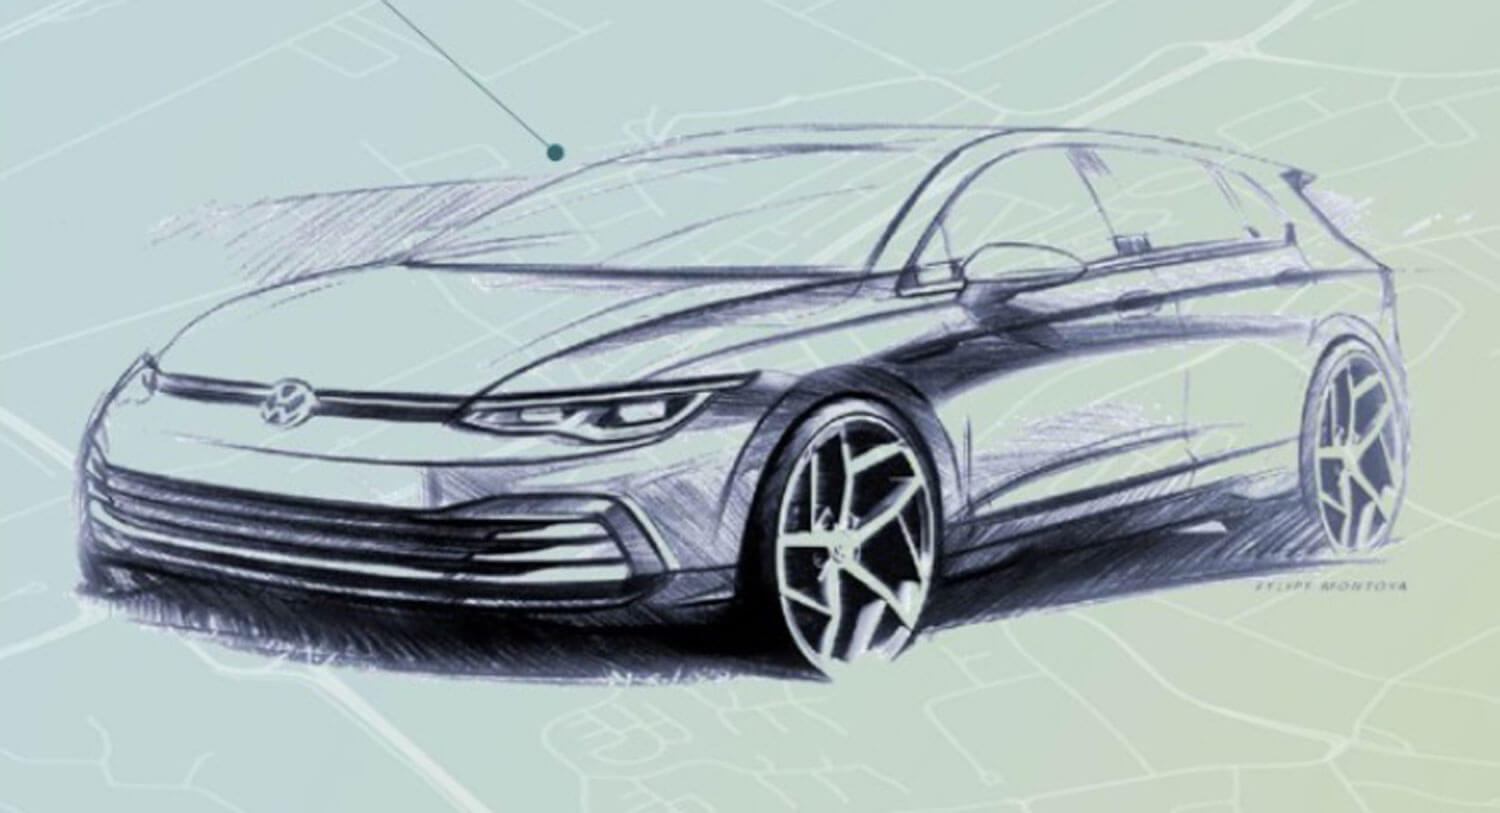 2020 Vw Golf 8 Interior And Exterior Sketches Are Very